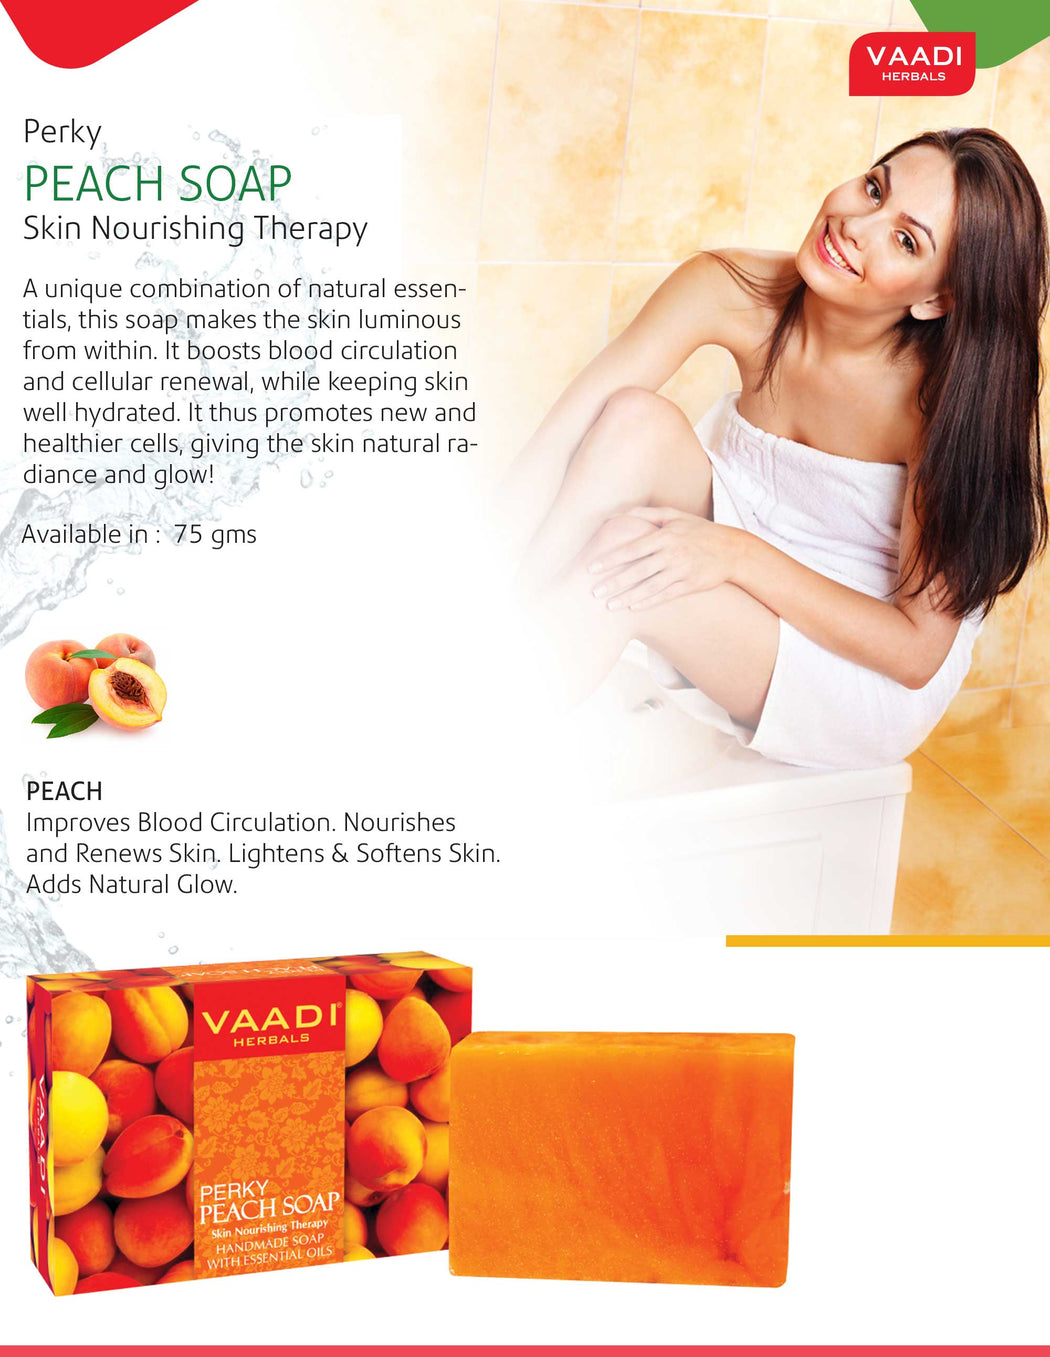 Organic Perky Peach Soap with Almond Oil - Skin Nourishing - Rehydrates (6 x 75 gms / 2.7 oz)